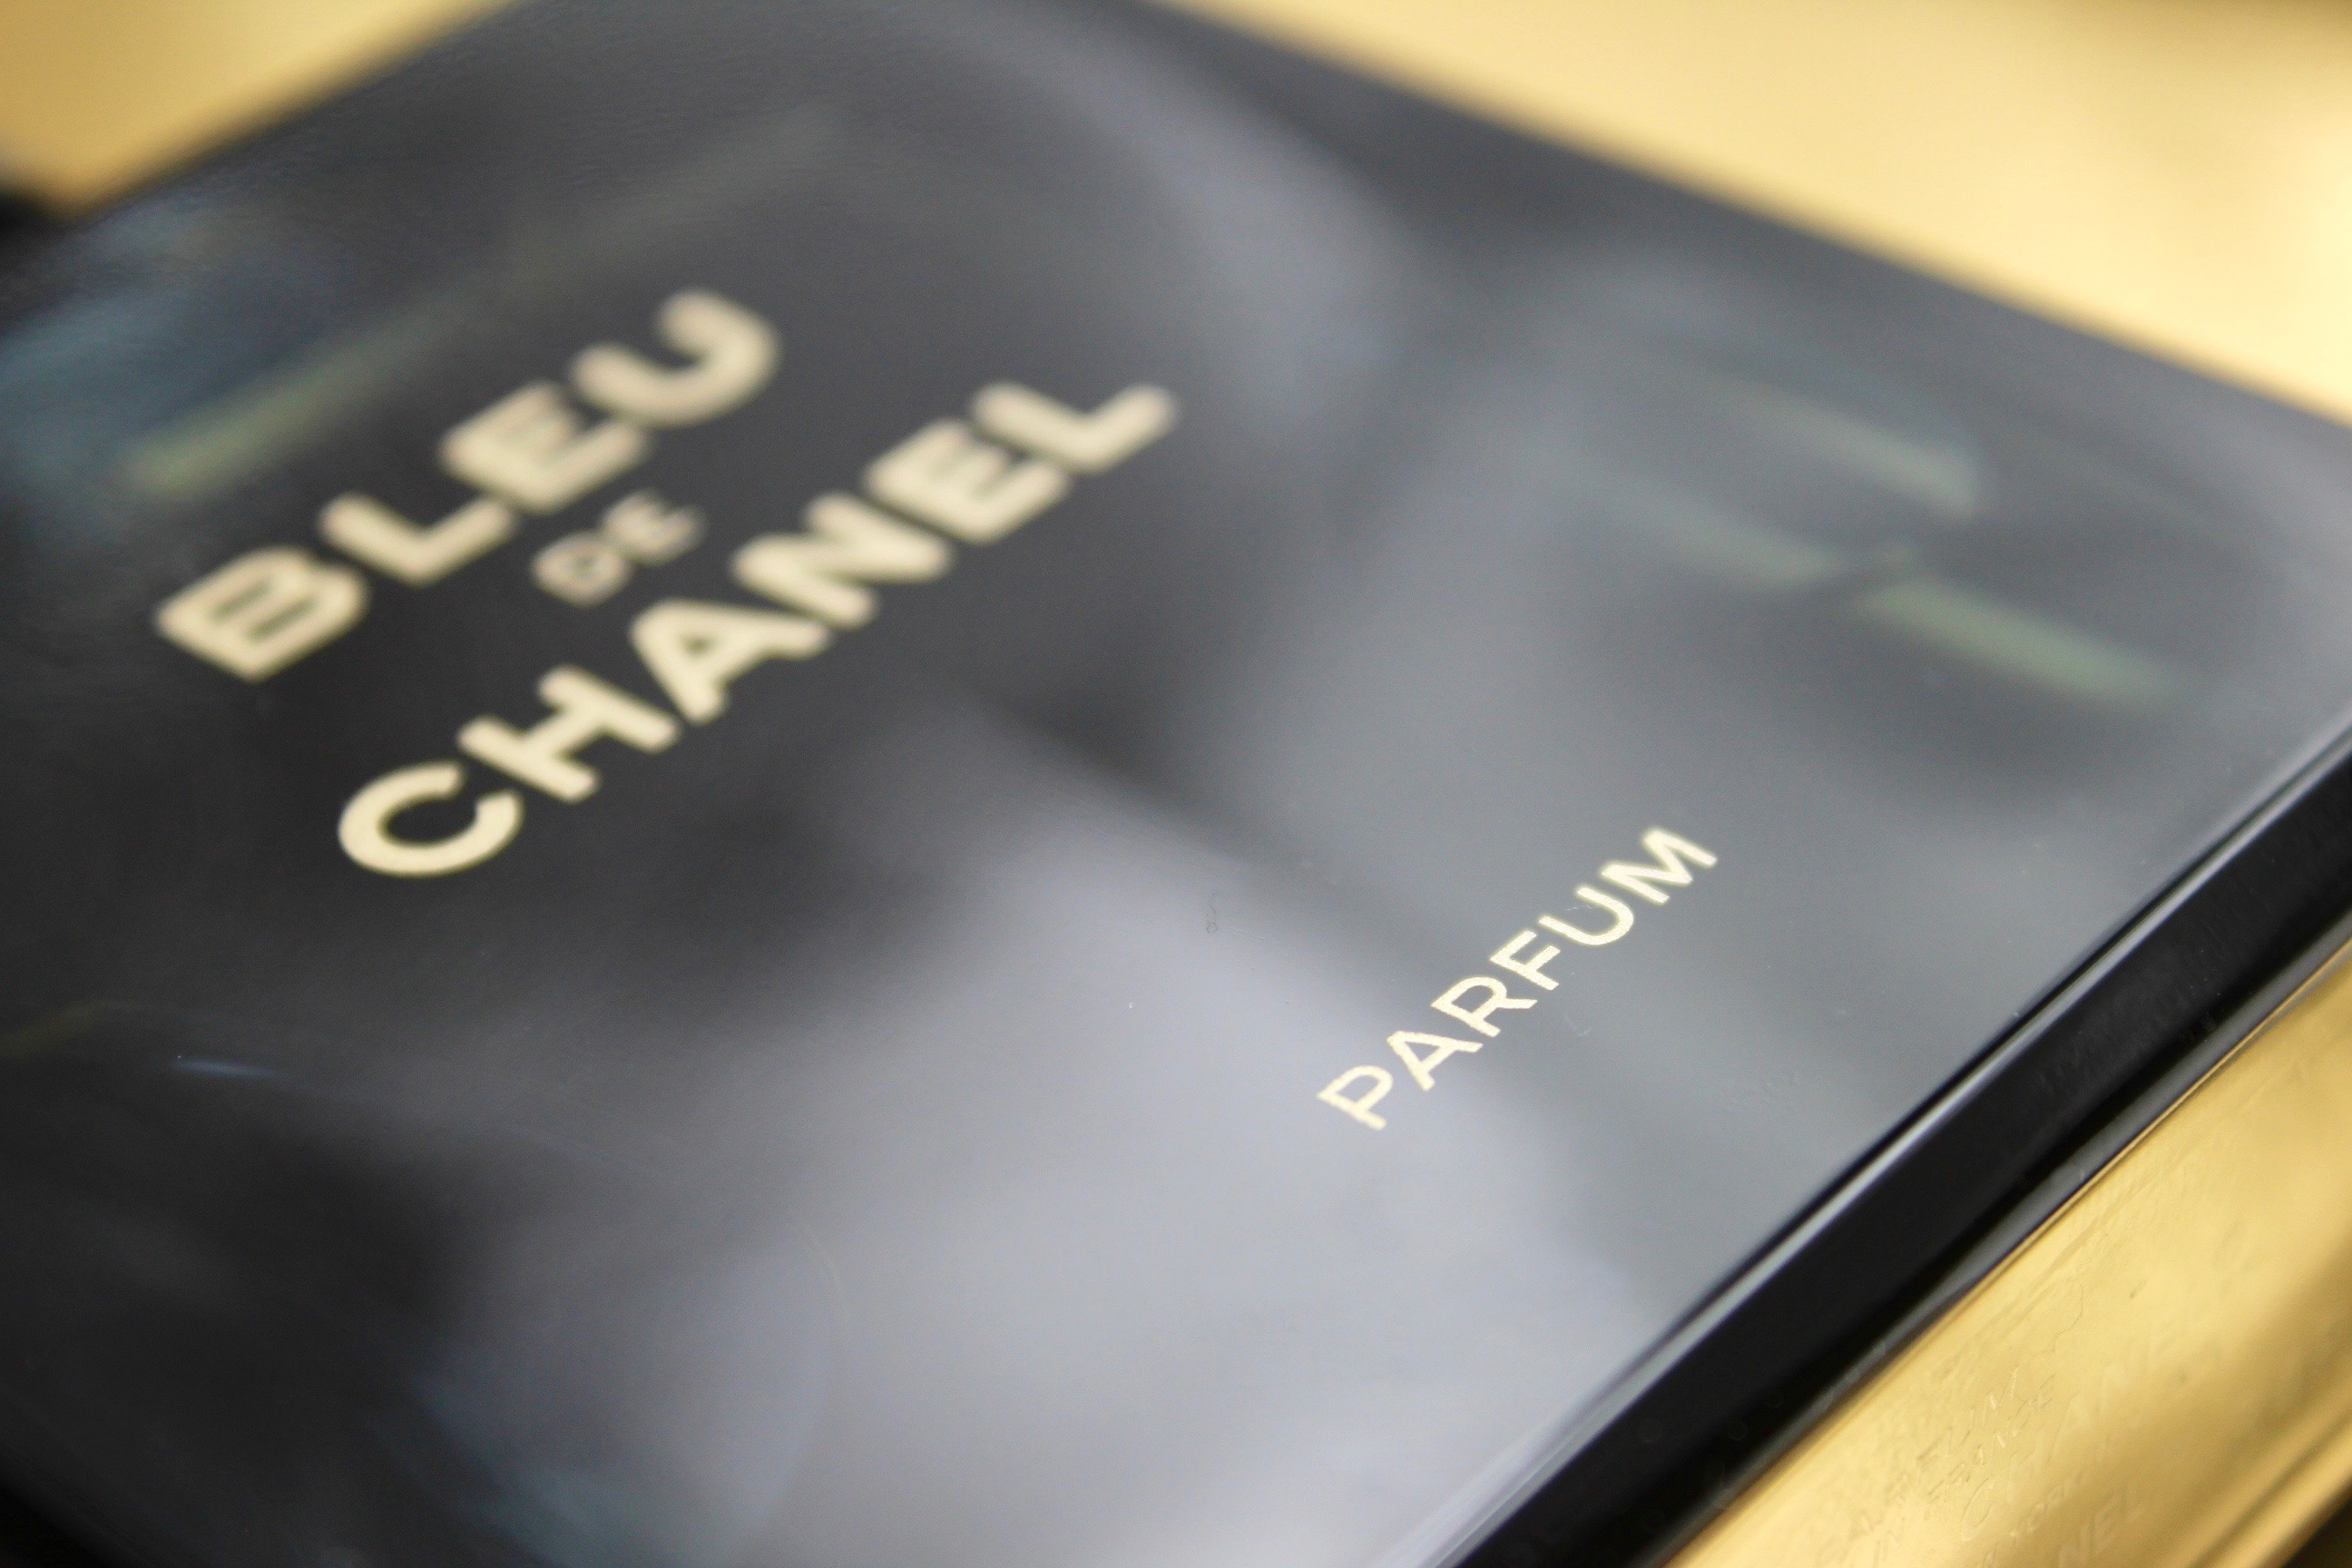 Perfume Review Bleu De Chanel Parfum By Chanel The Candy Perfume Boy